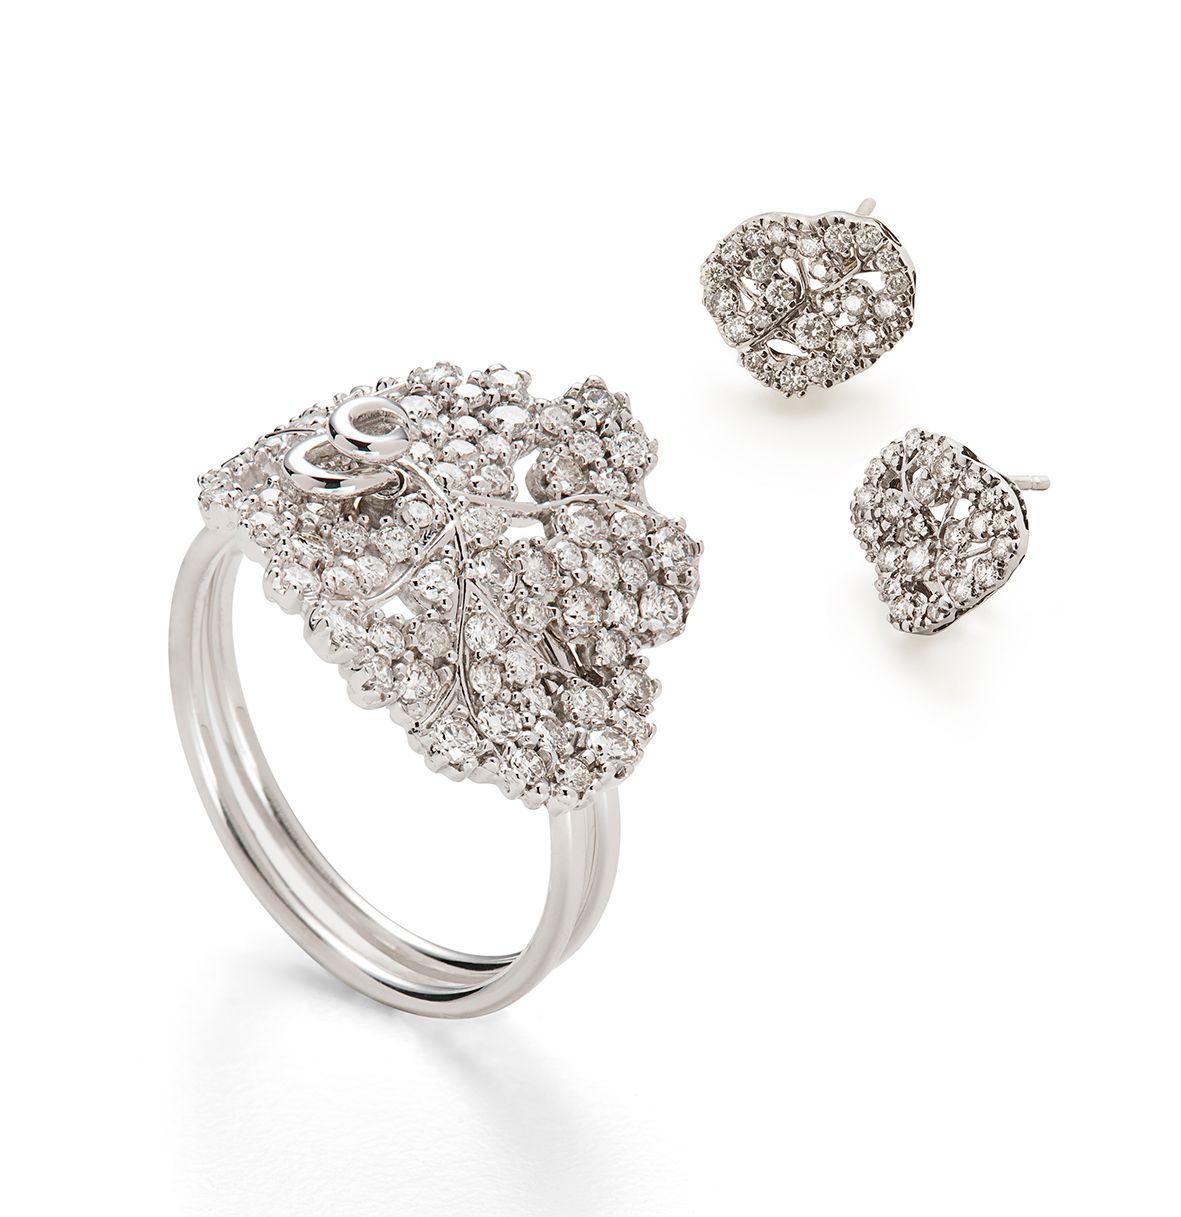 H.Stern Natur Collection Ring And Earrings In 18K White